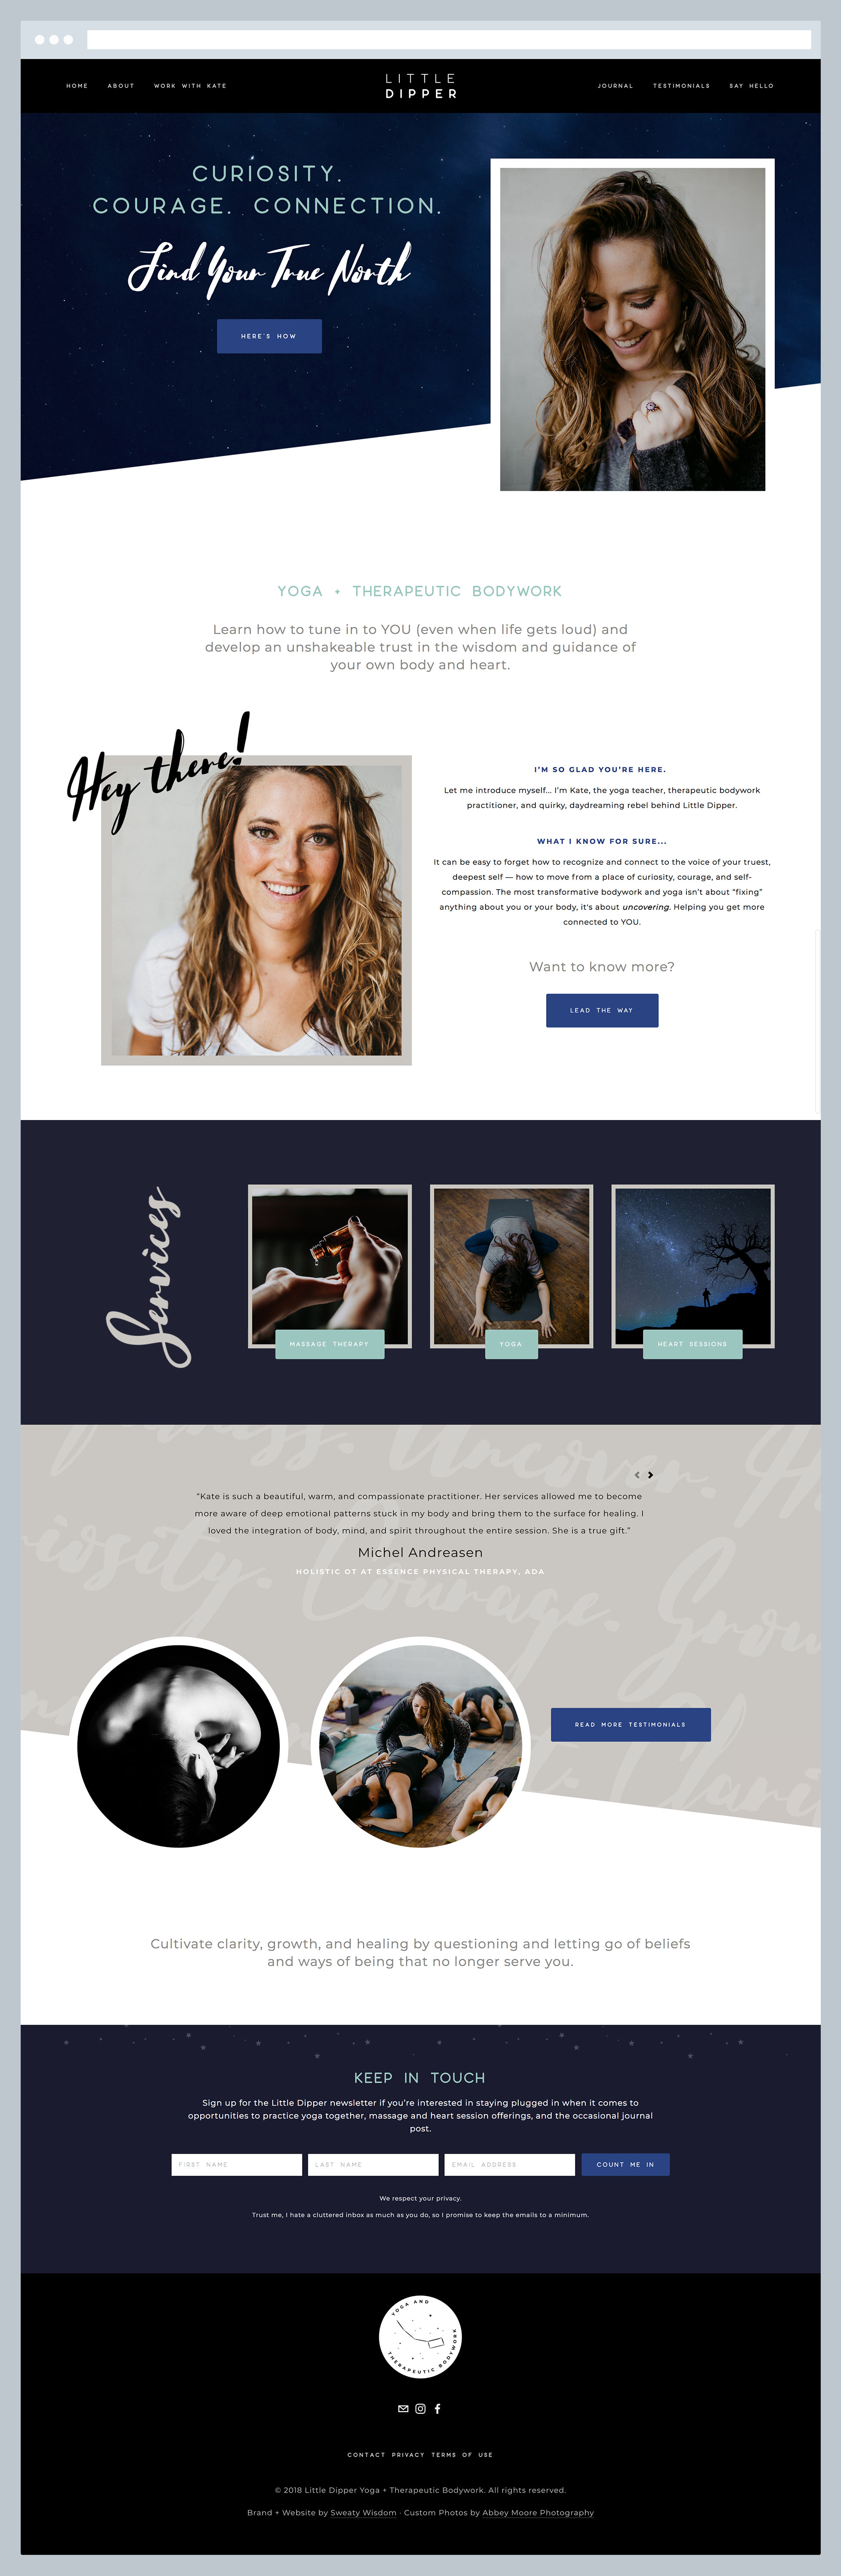 Litter Dipper - Home Page, by Janessa Rae Design Creative in collaboration with Sweaty Wisdom